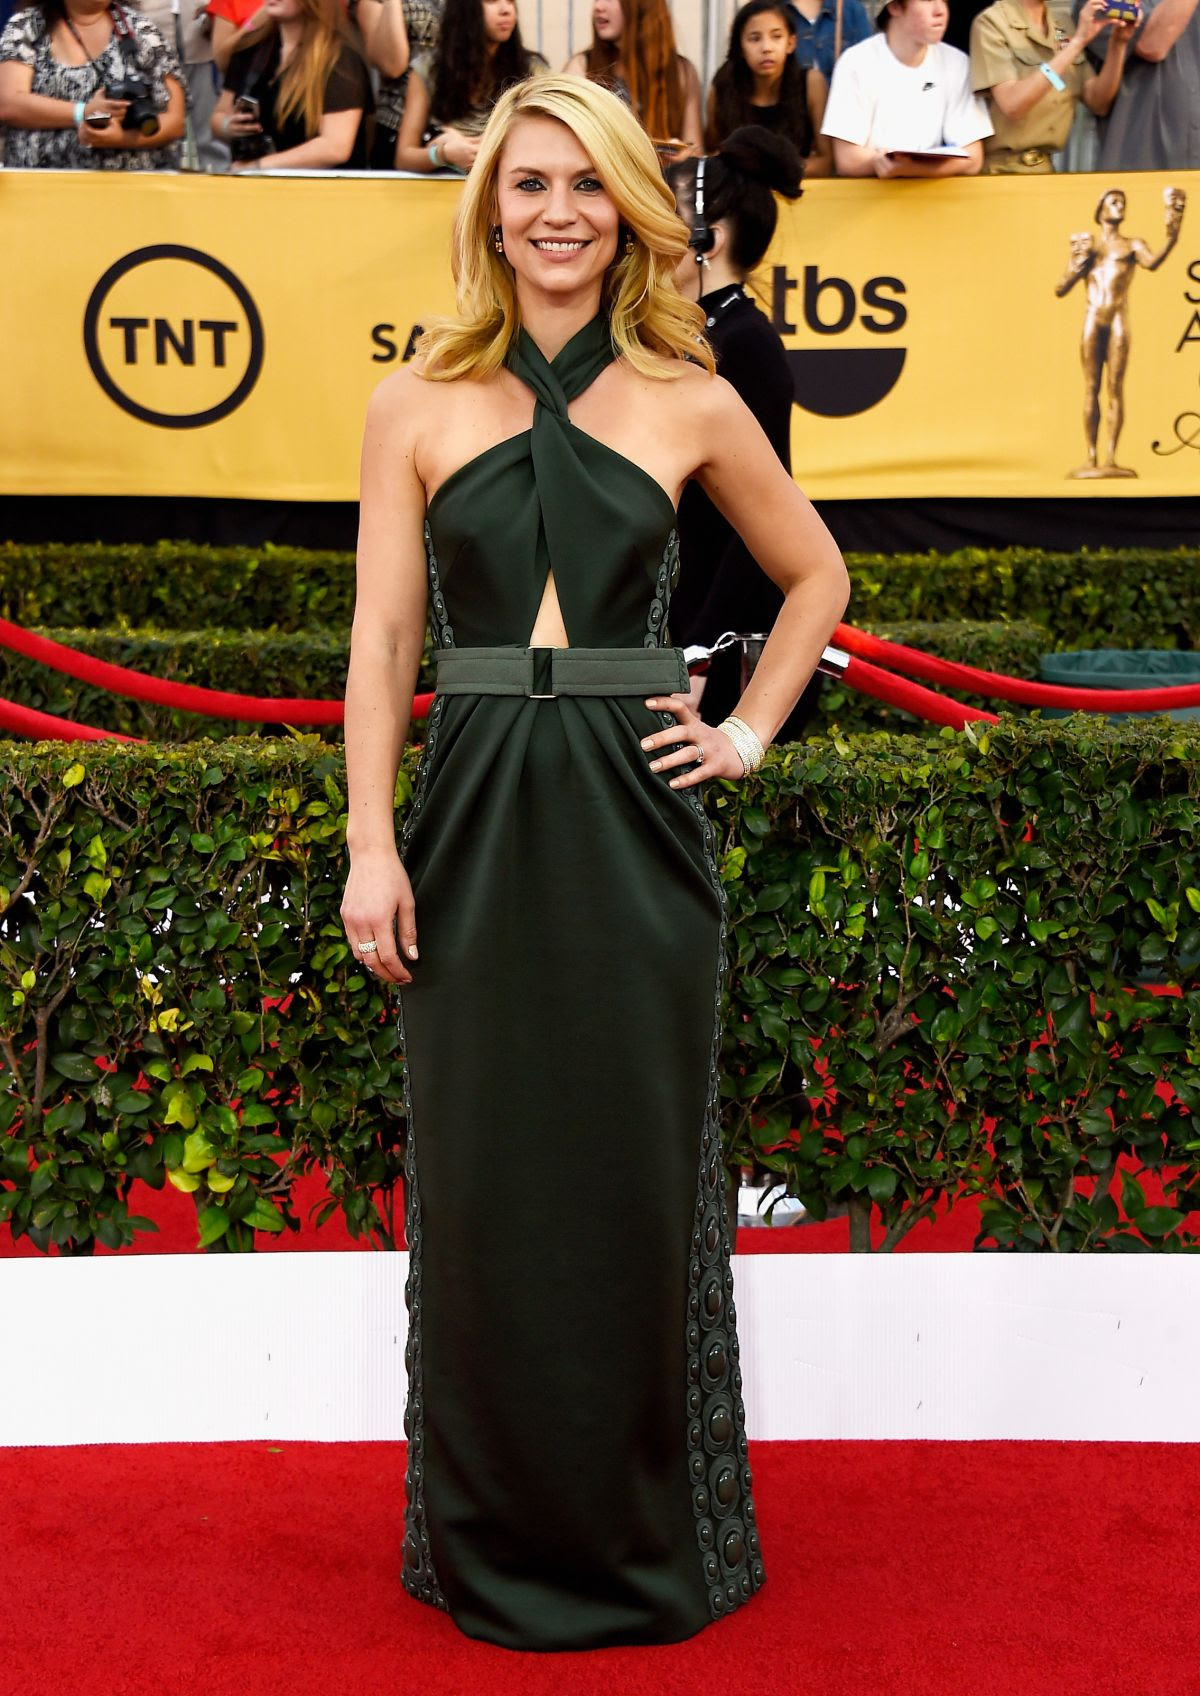 CLAIRE DANES at 2015 Screen Actor Guild Awards in Los Angeles